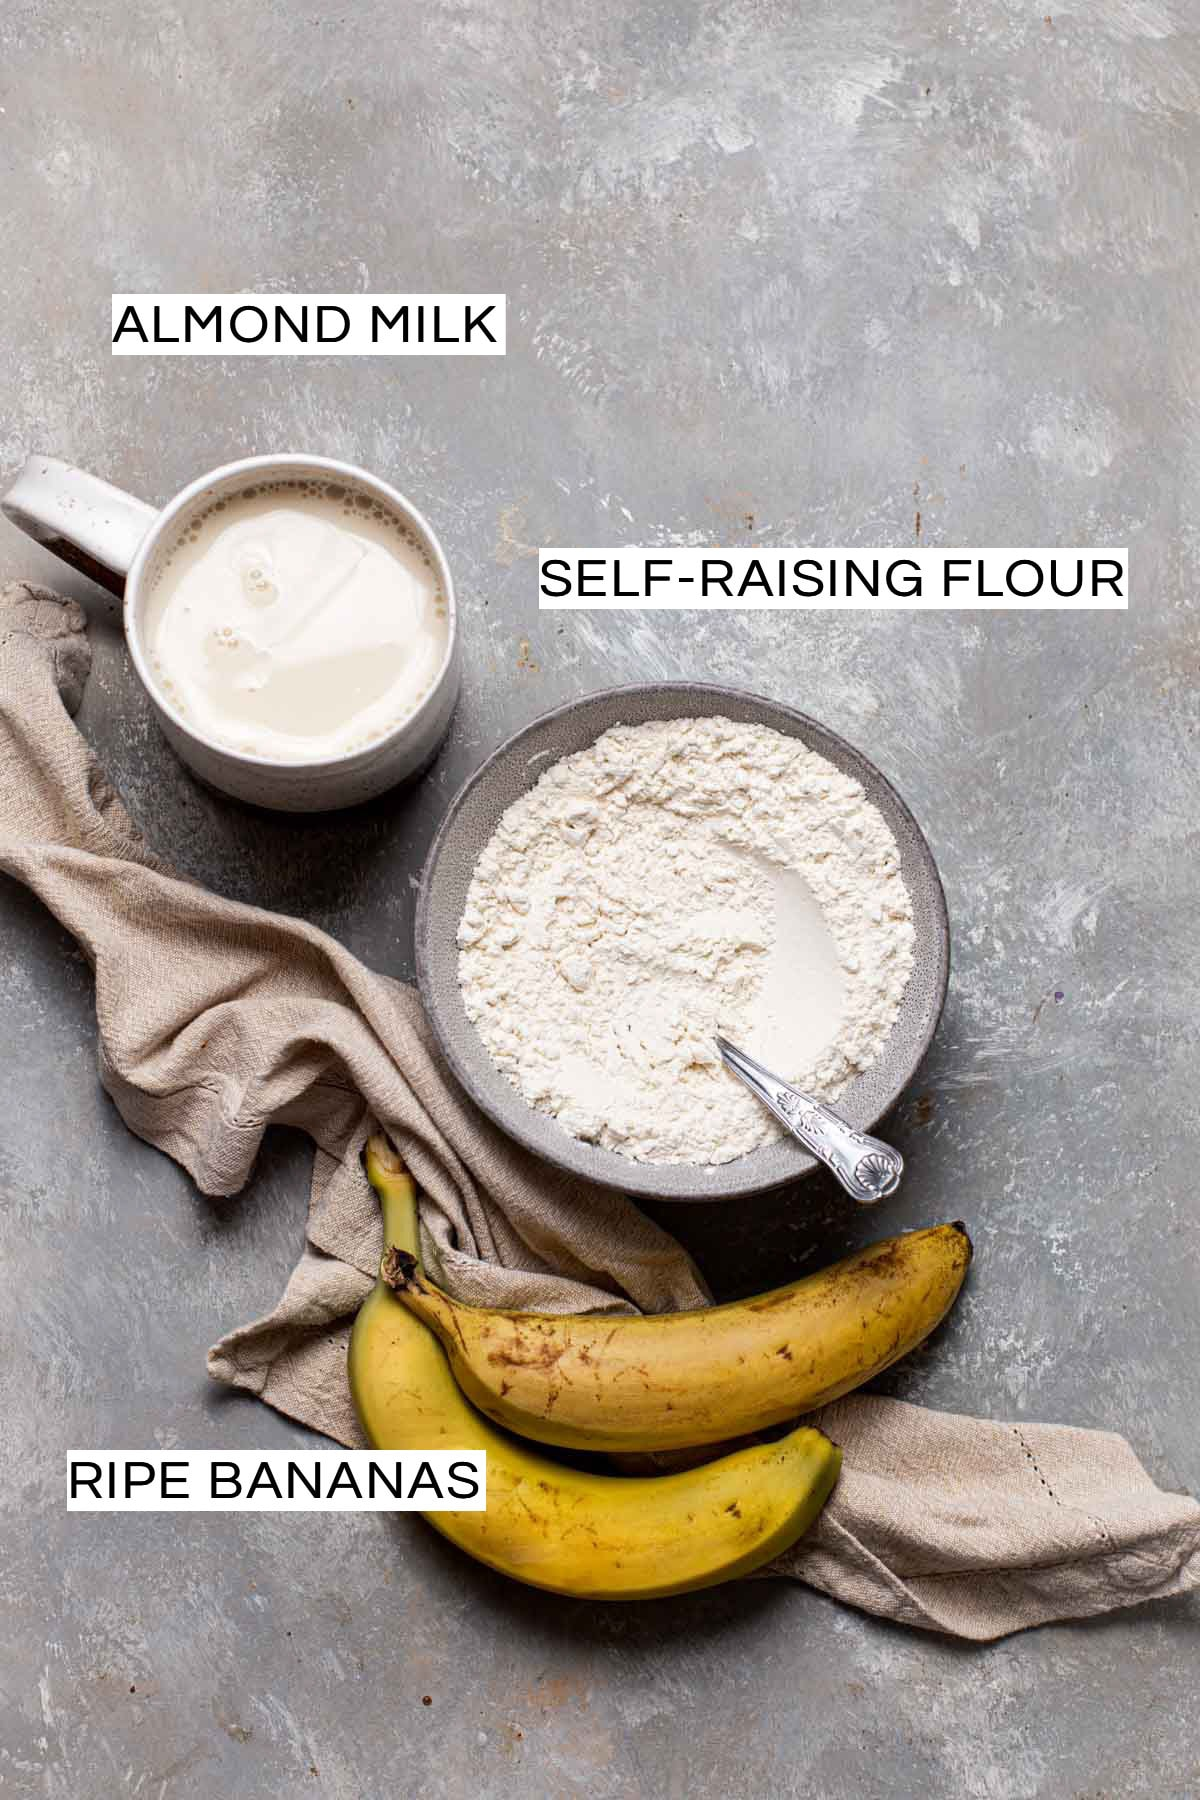 All ingredients needed to make a vegan pancake laid on a flat grey surface.